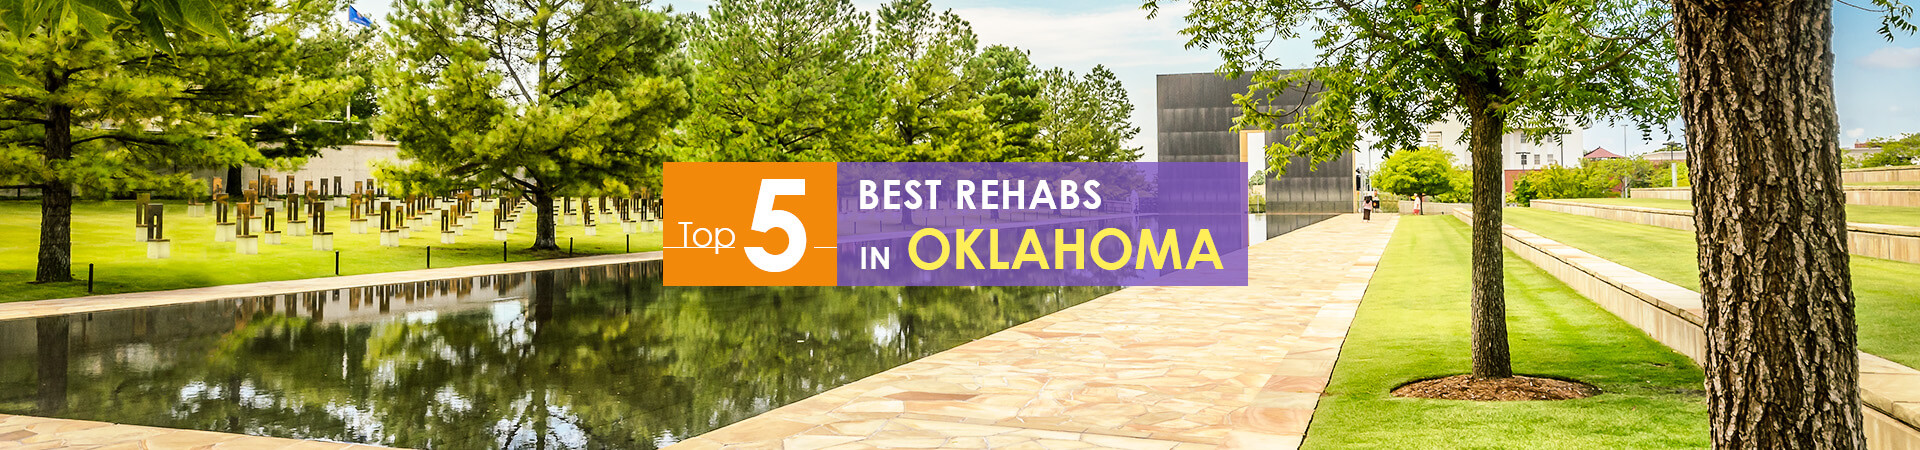 Oklahoma City National Memorial ans top 5 rehabs caption